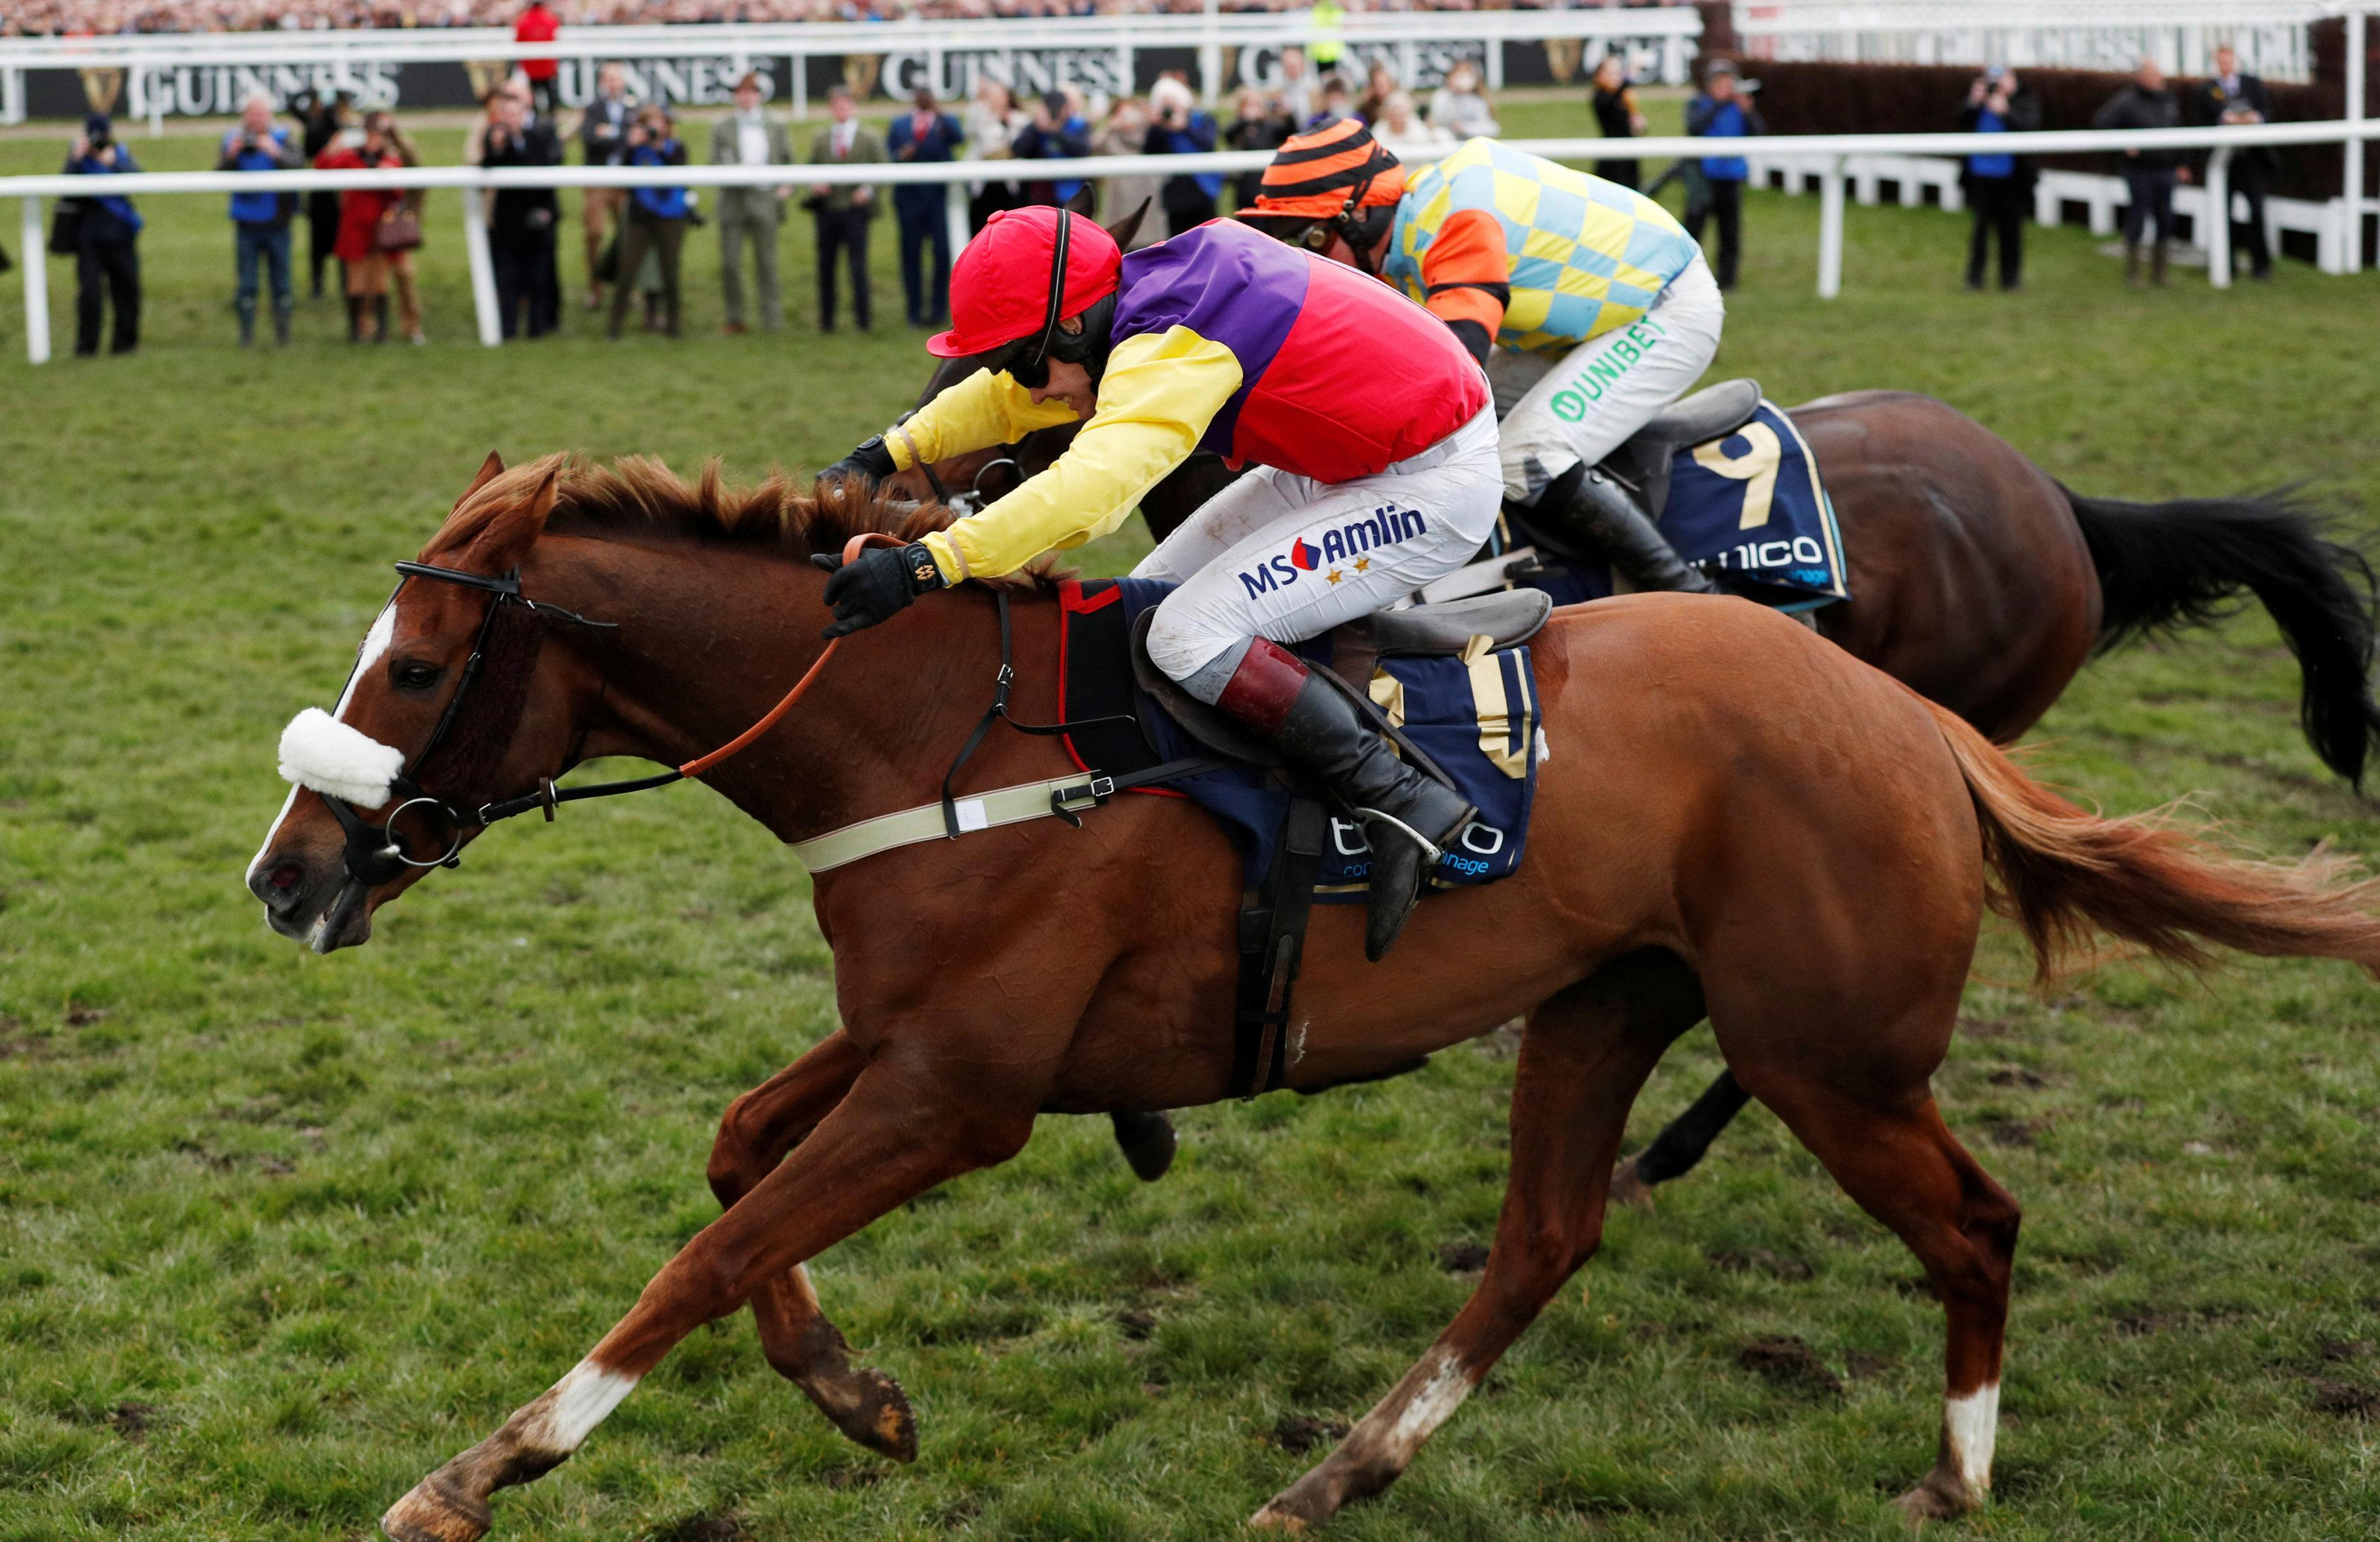 Cheltenham Festival 2019: Entries made for Gold Cup as 43 hopefuls including Native River, Might Bite, Presenting Percy and Kemboy set sights on the big one